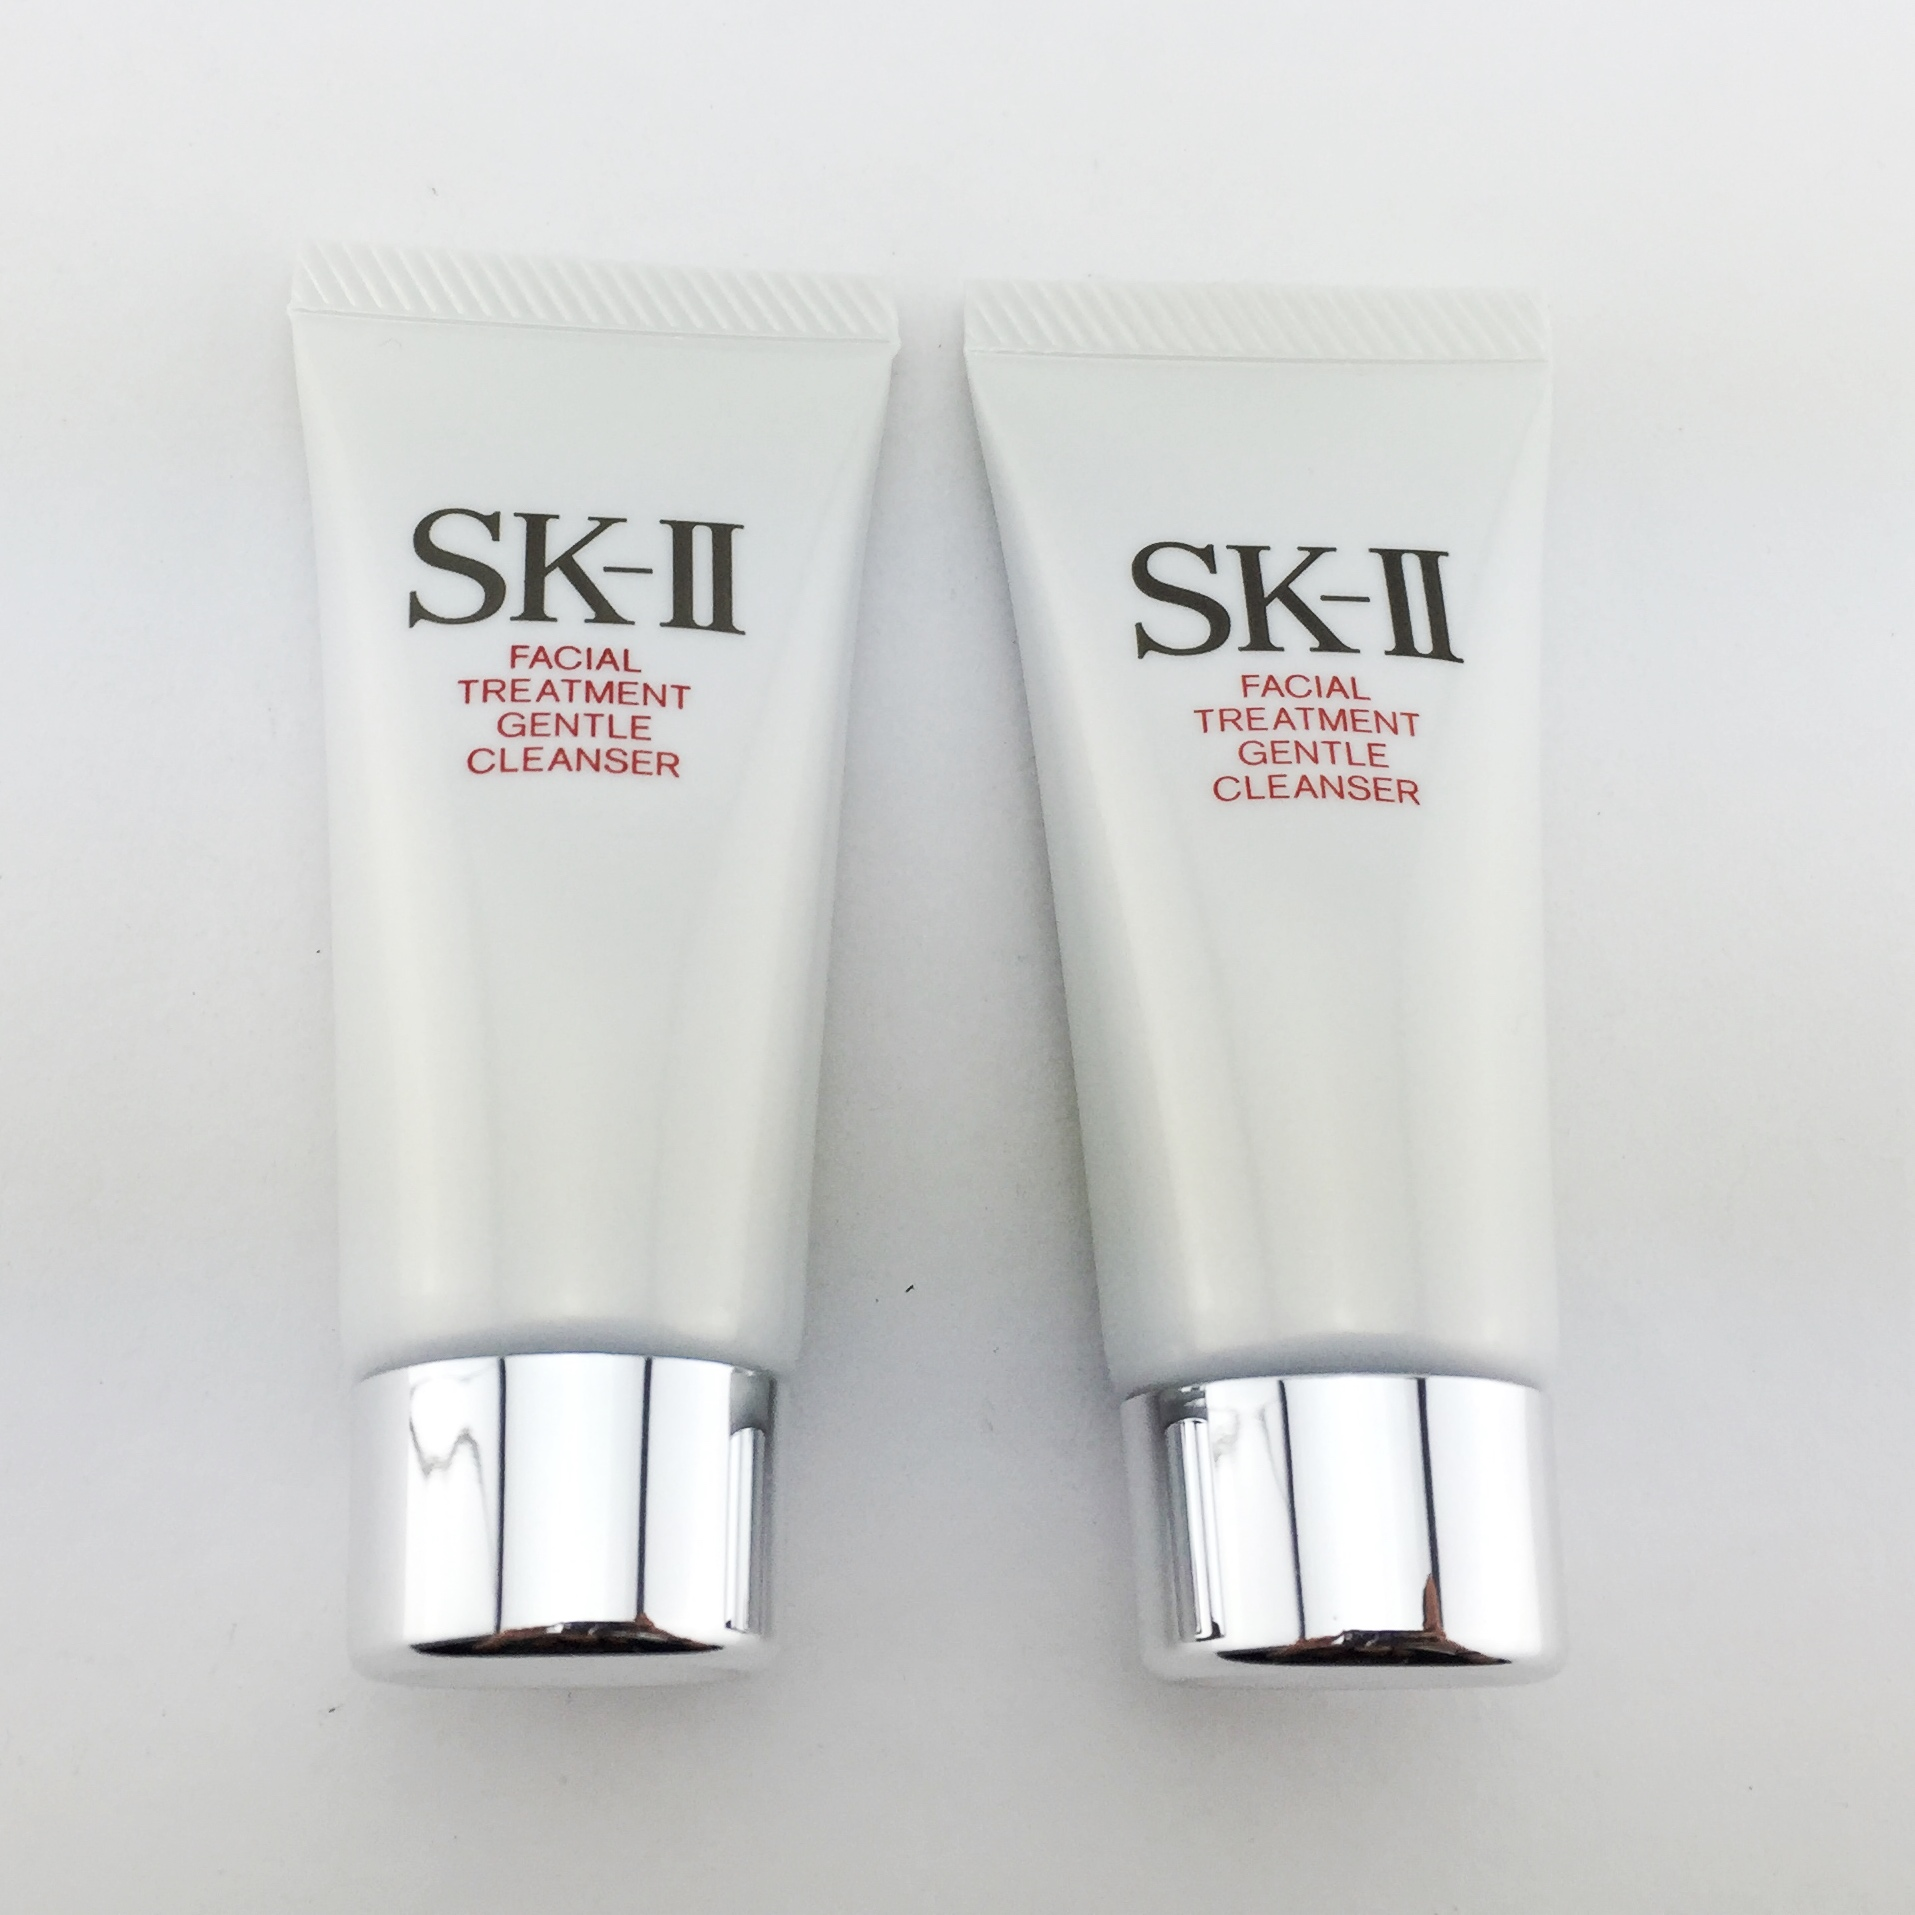 Buy Skii Facial Treatment Essence Clear Lotion Gentle Cleanser Rna Sk Ii Cellumination Deep Surge Cds Ex 15 G New Manufactured In Oct 2015